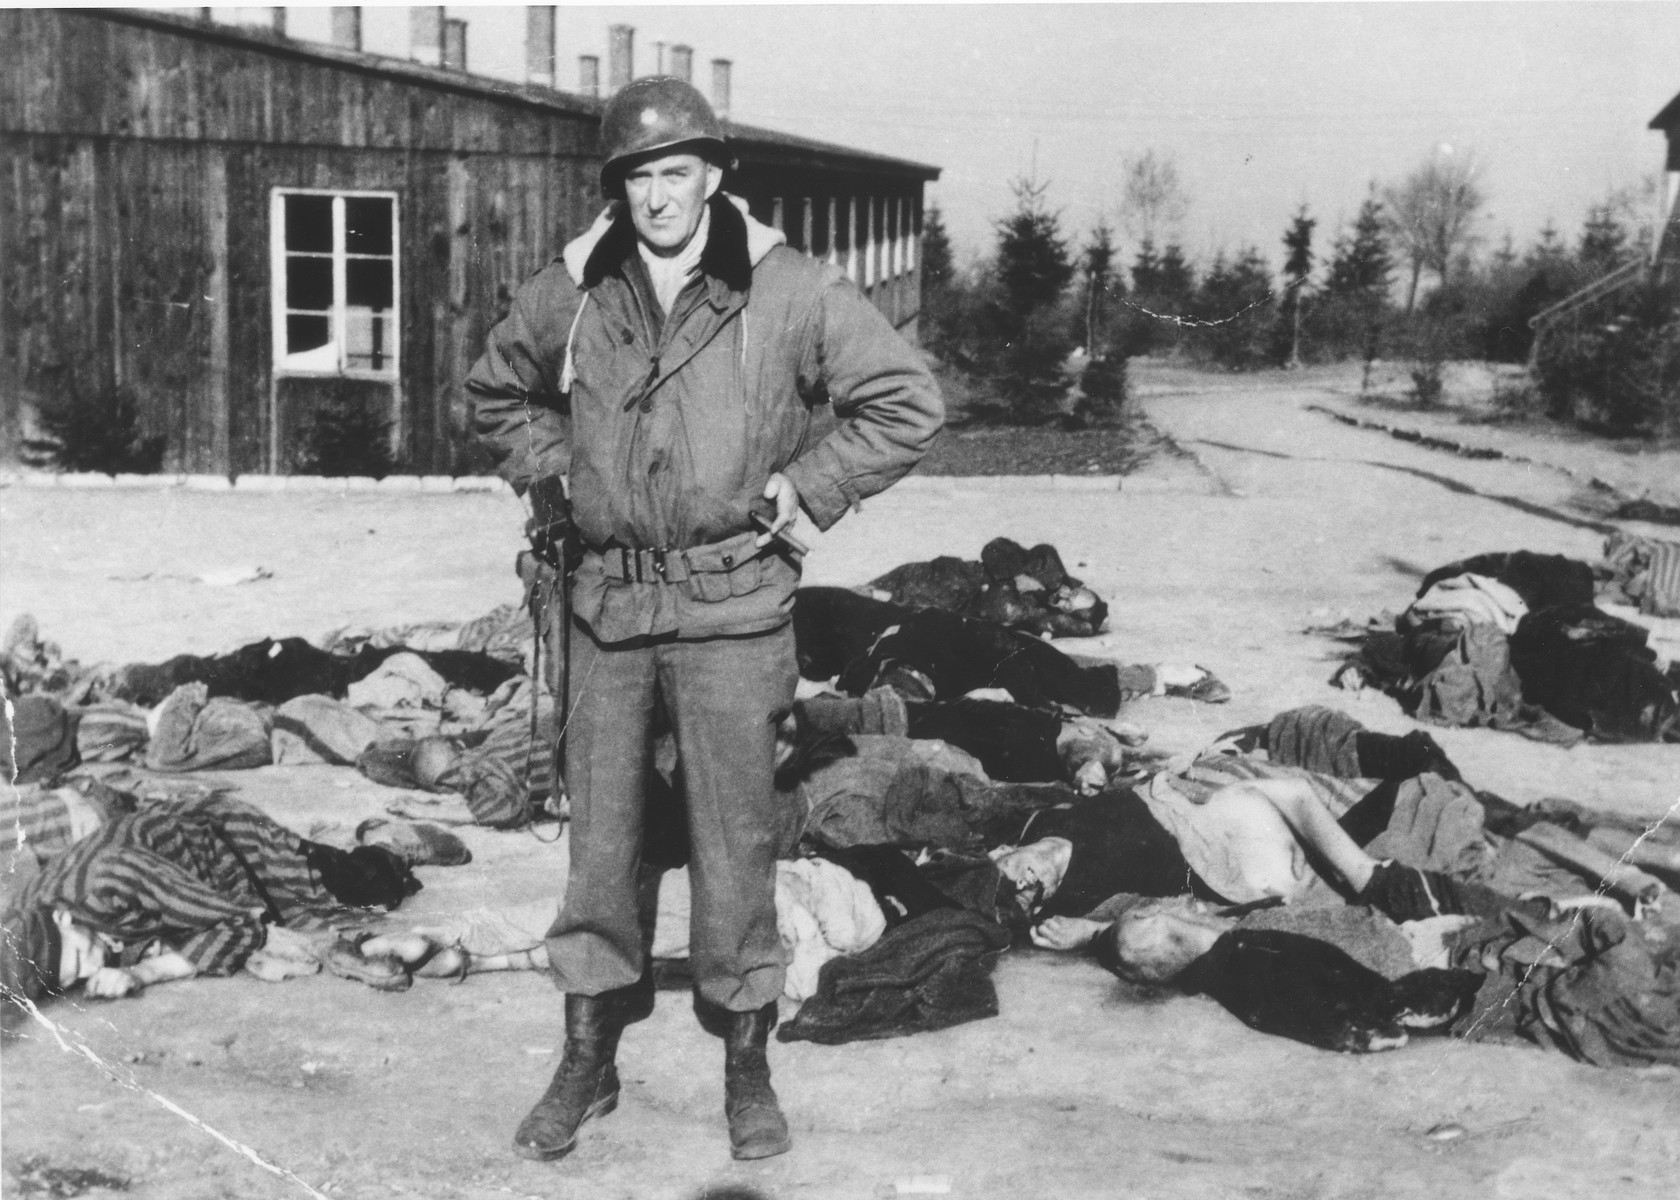 An American soldier stands in front of a large number of corpses that are strewn along the road in the newly liberated Ohrdruf concentration camp.